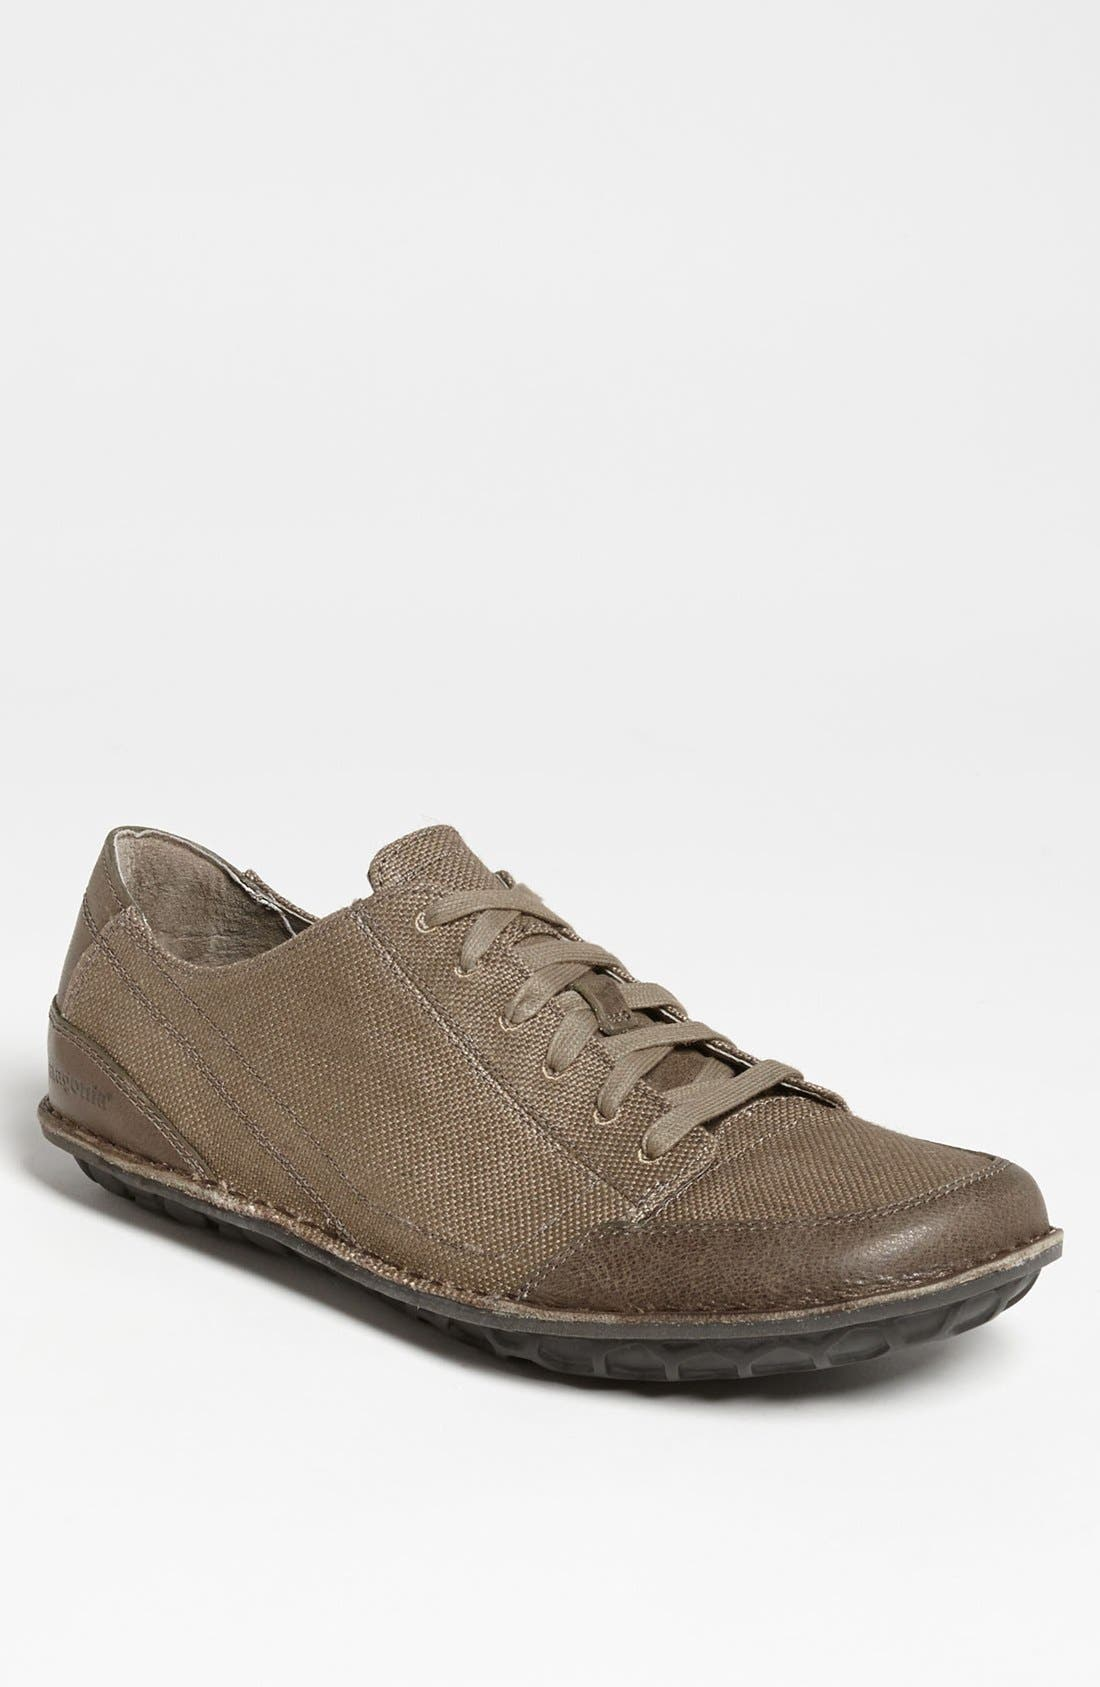 Alternate Image 1 Selected - Patagonia 'Banyan' Sneaker (Men)